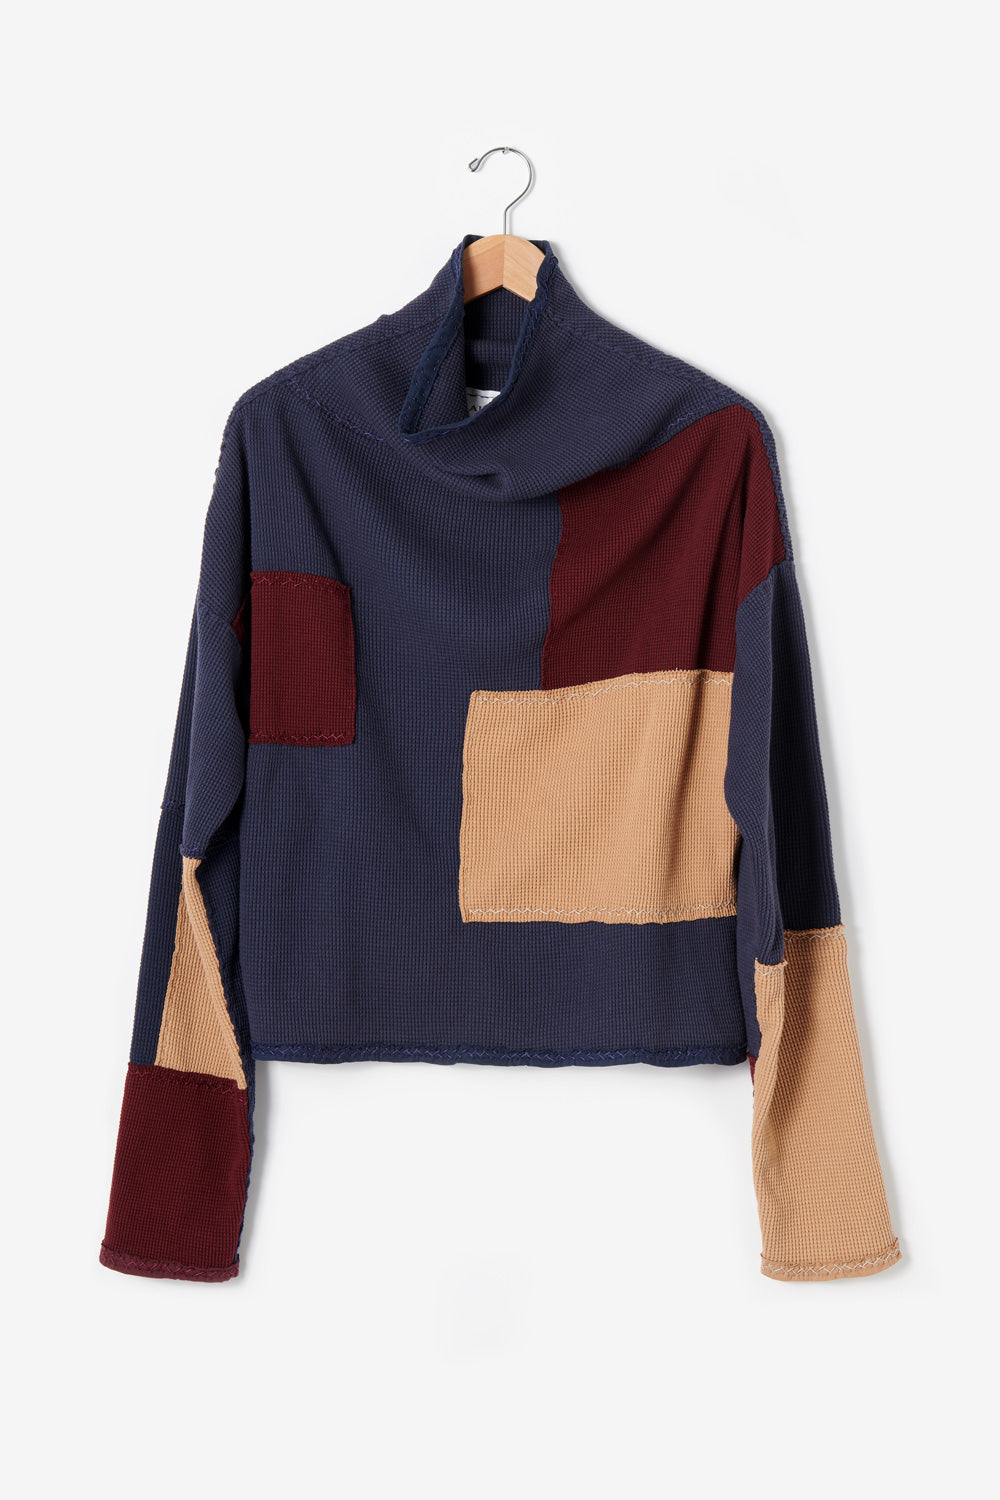 Alabama Chanin Artisan-Designed Zero Waste Waffle Sweatshirt in Camel and Navy Organic Cotton Waffle and Heavy-weight rib in Plum One-of-a-Kind #30461